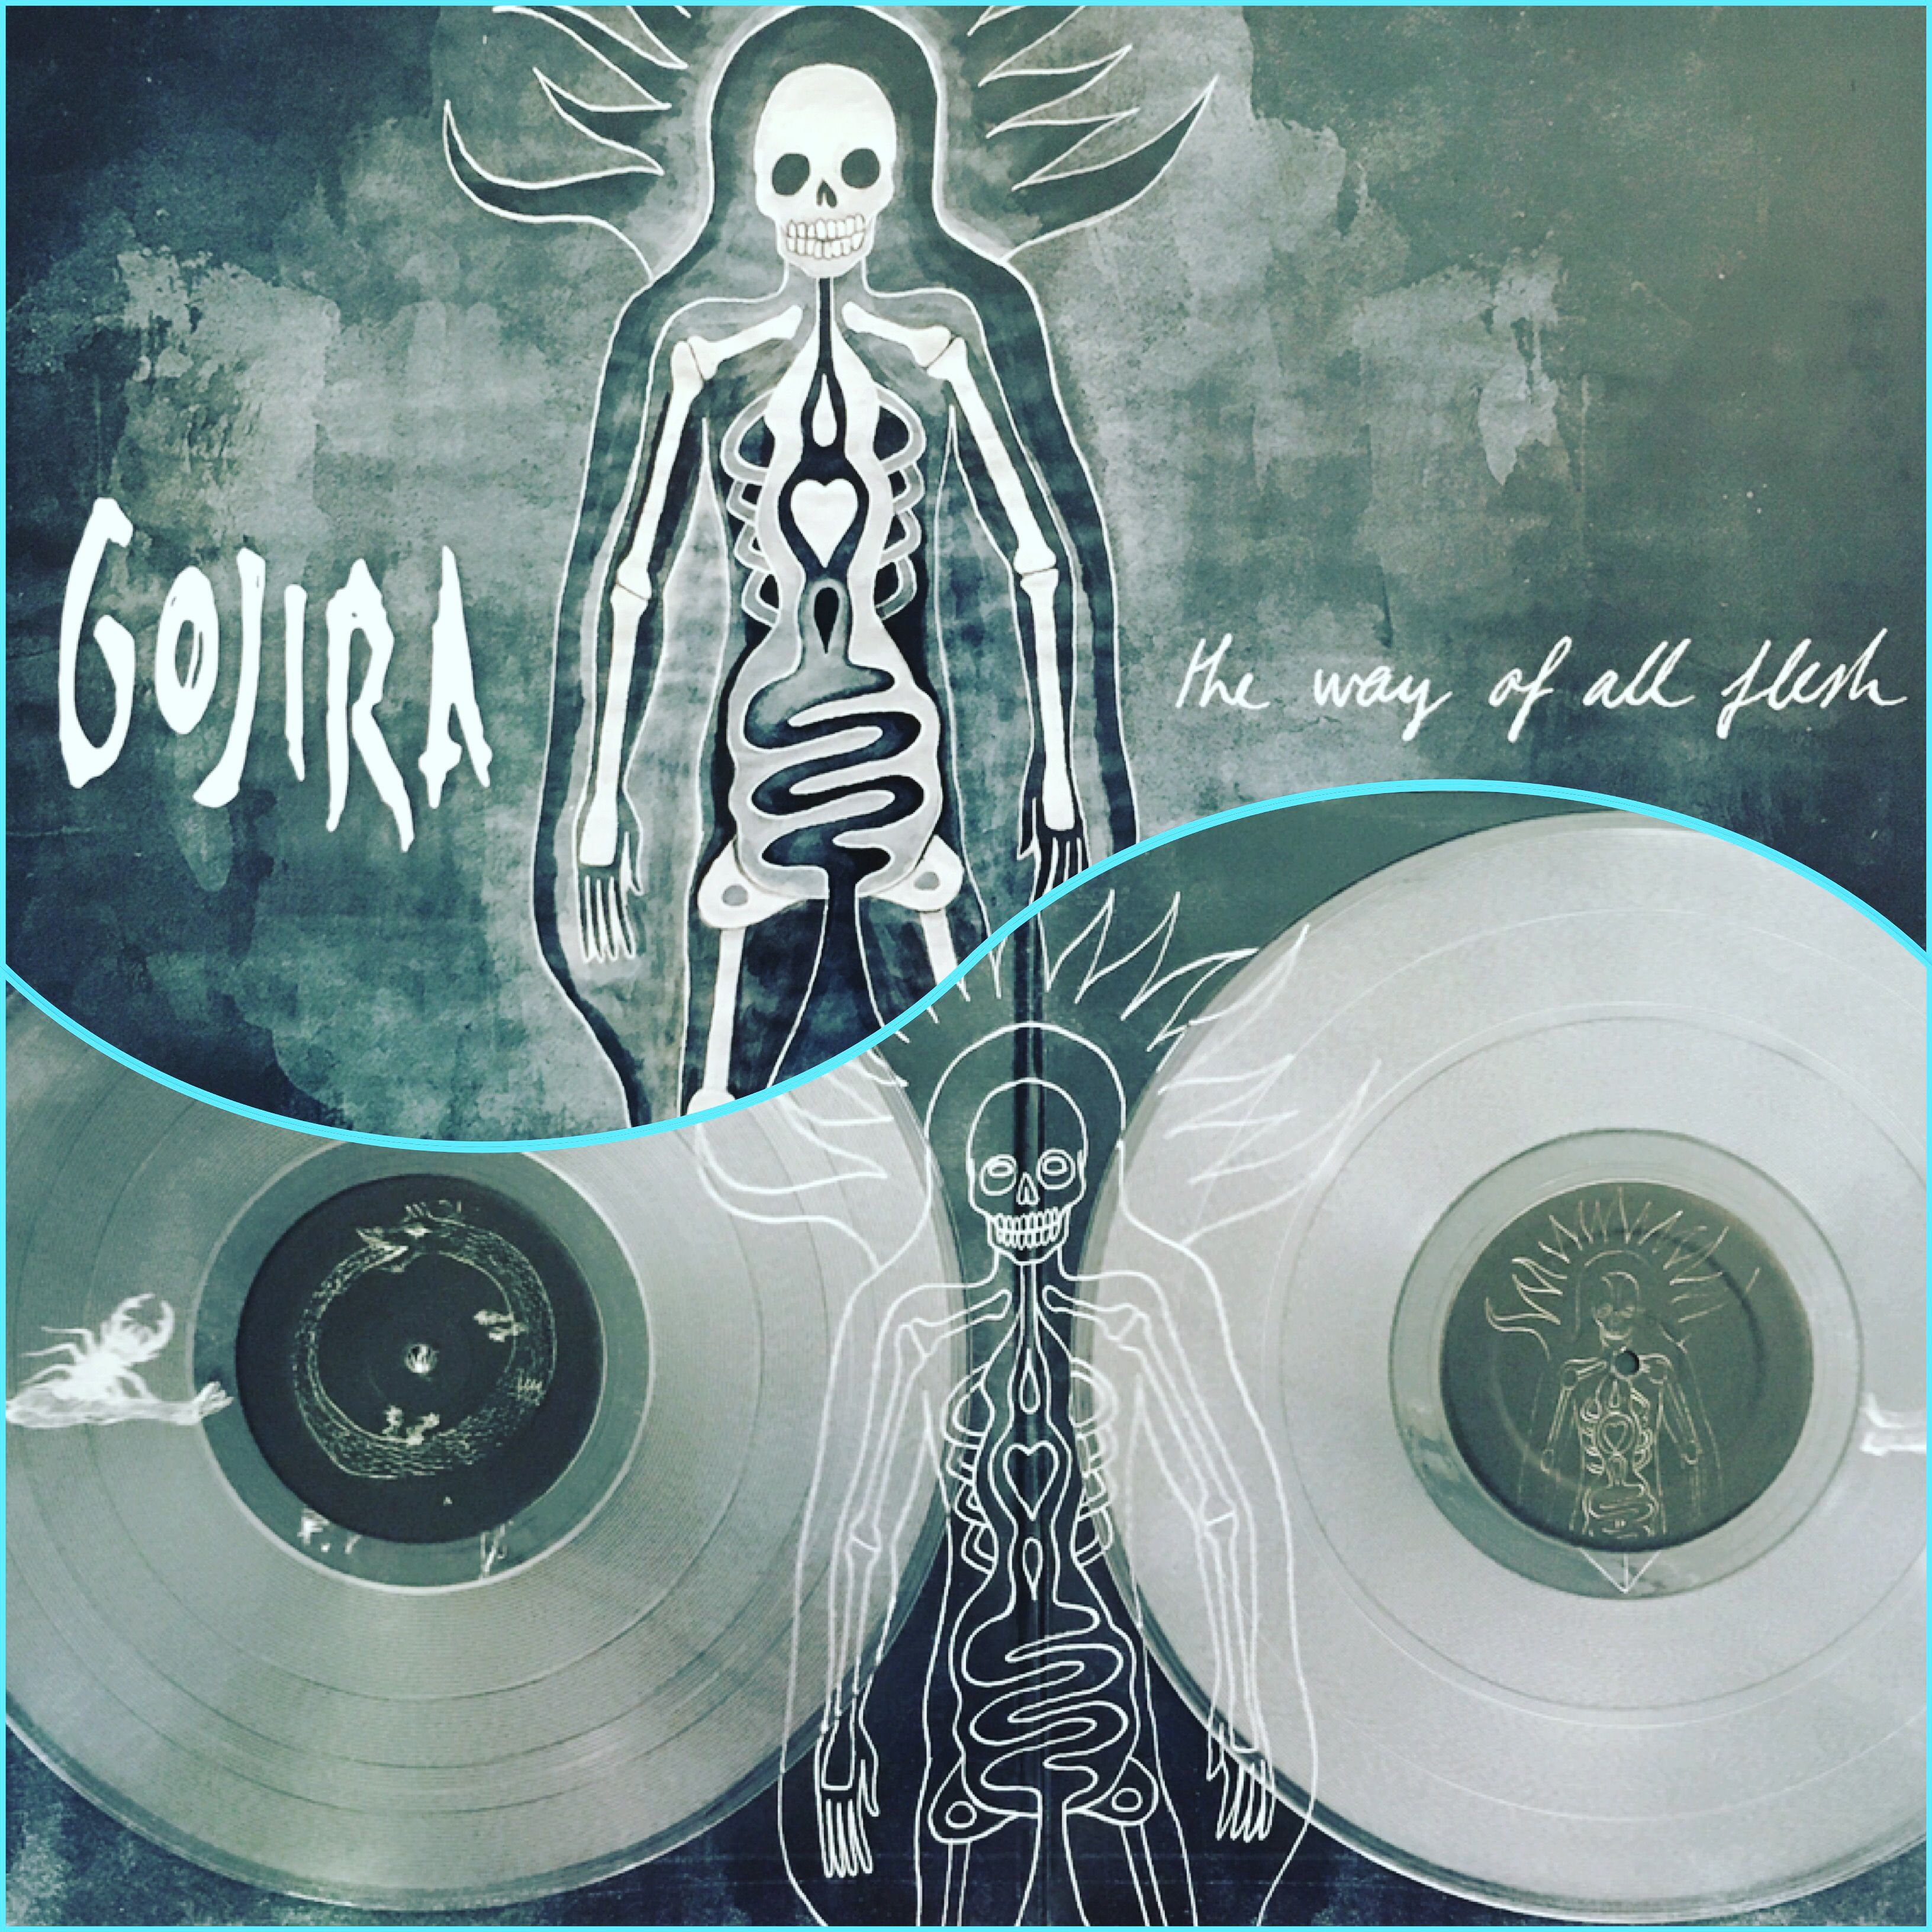 Gojira The Way Of All Flesh Vinyl Pressing Record Collection Music Record Vinyl